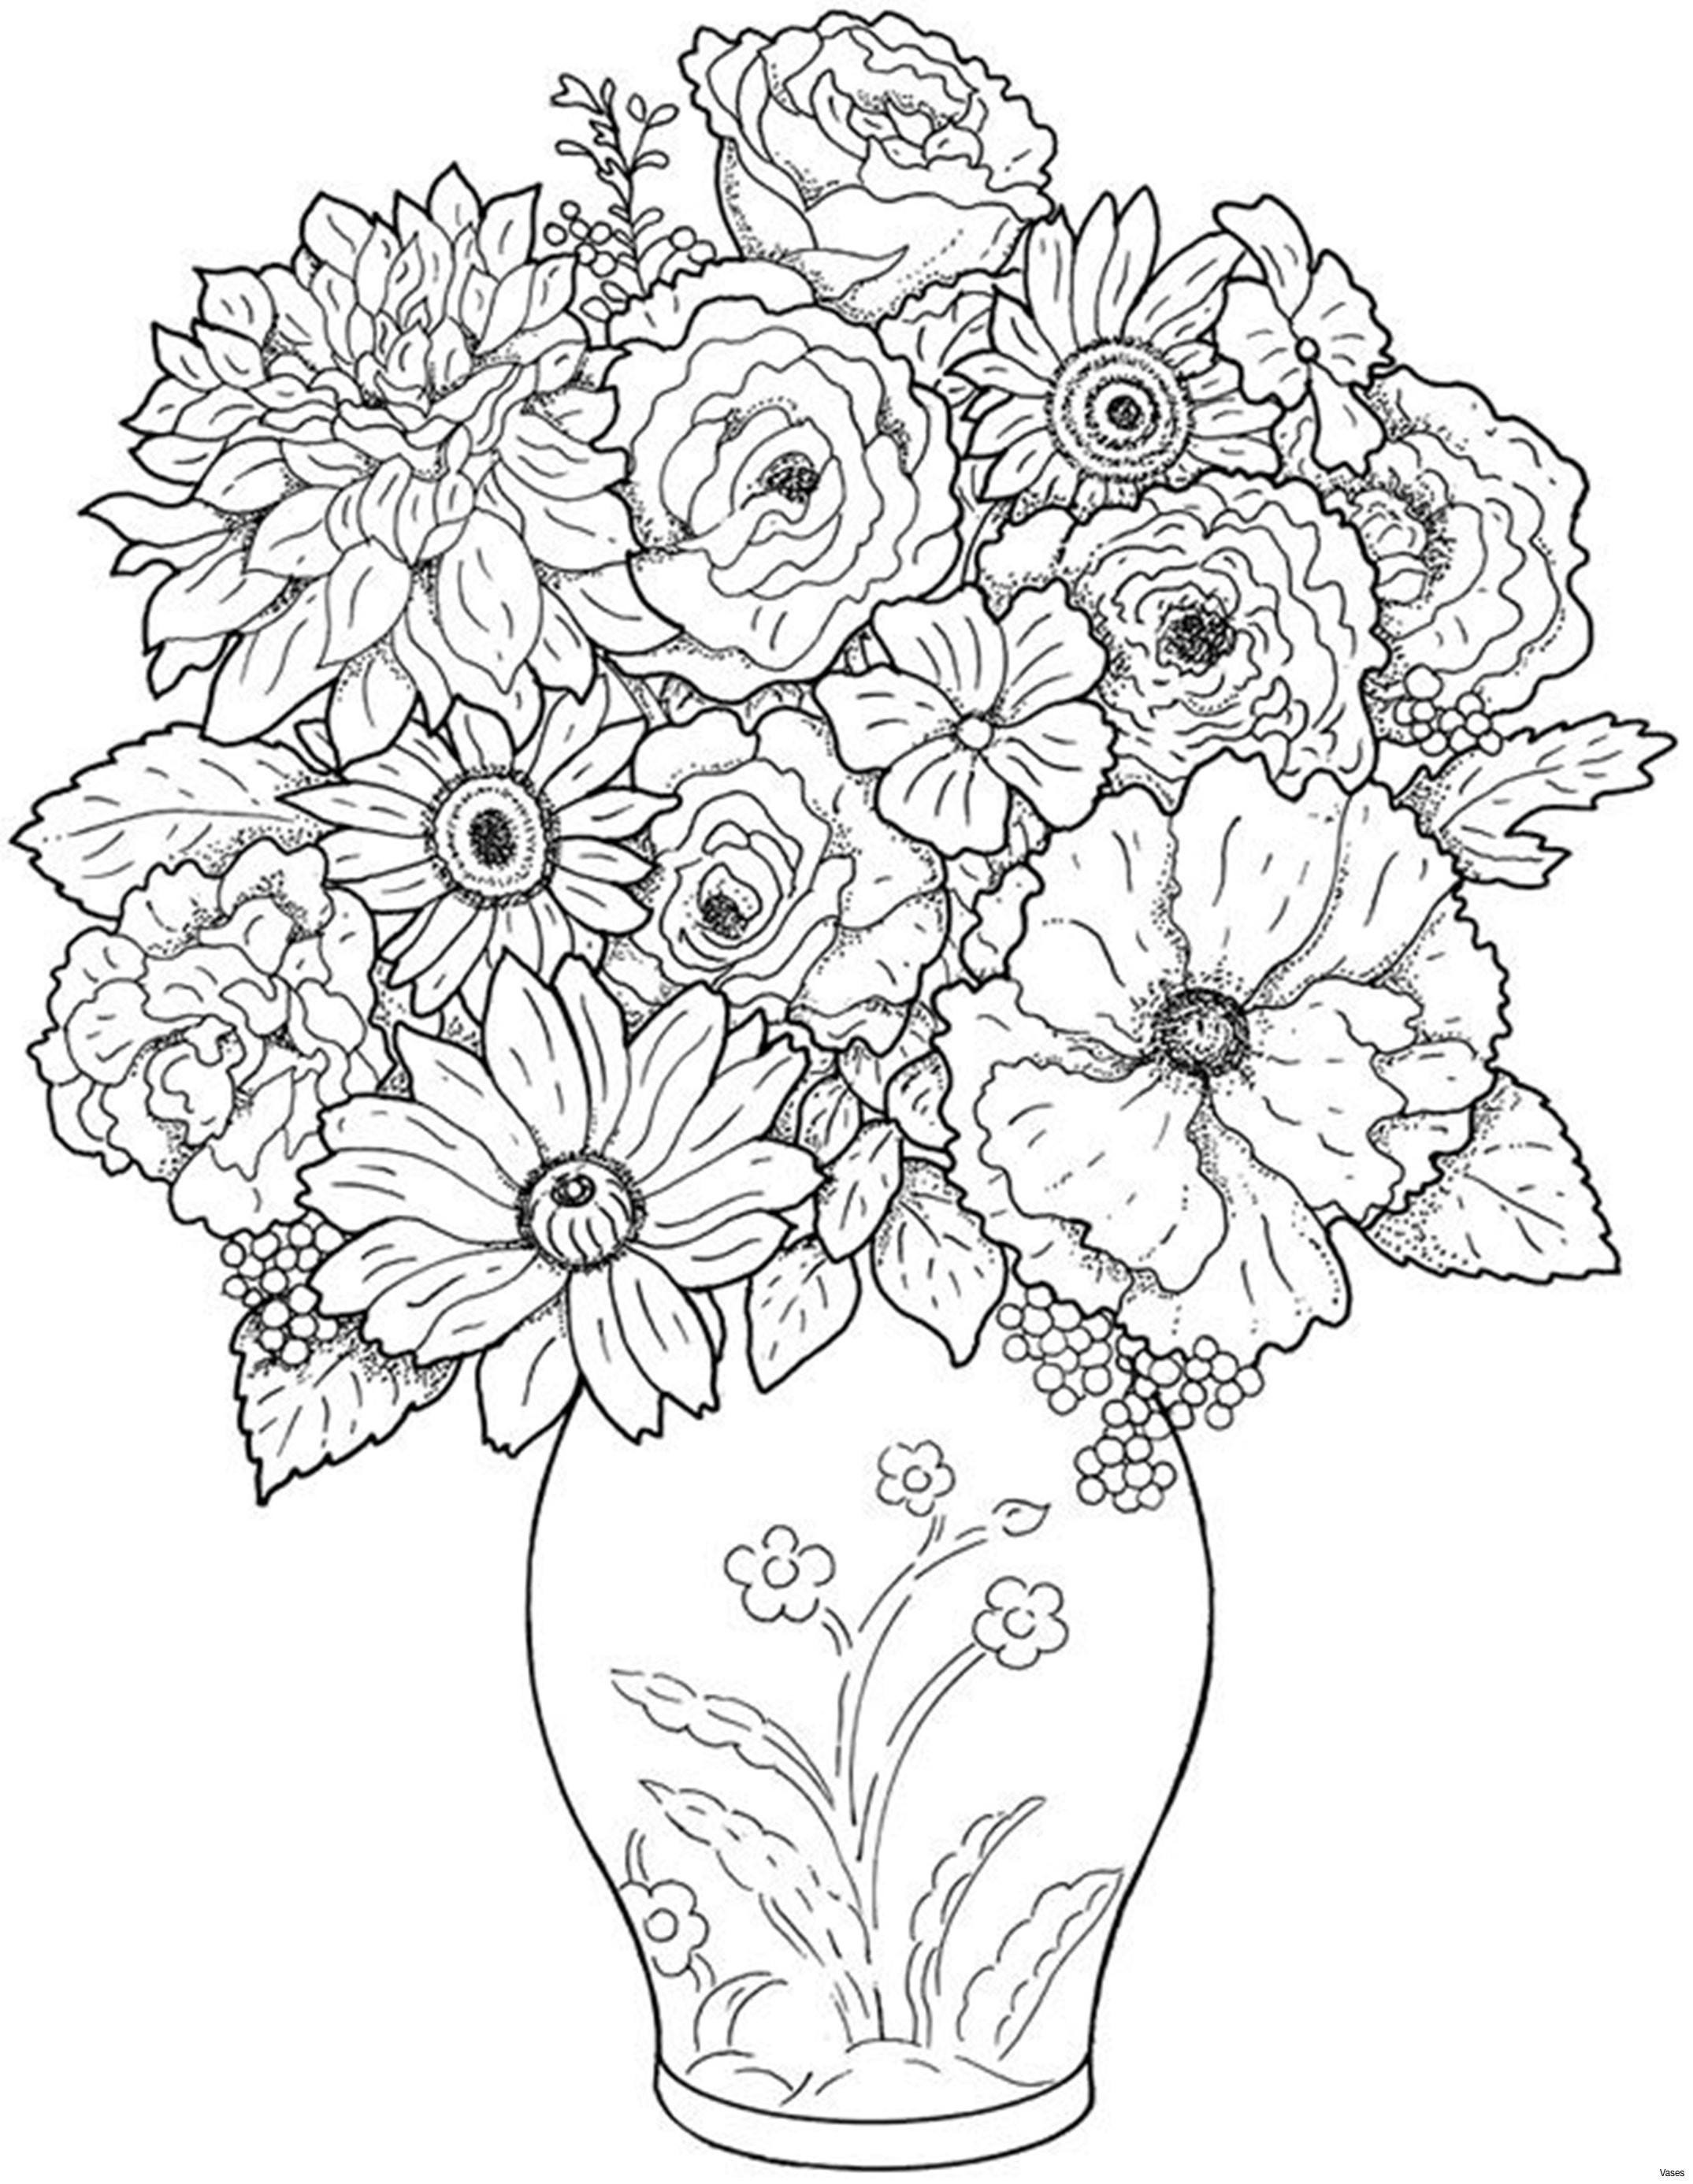 white glass vase of new gray flowers yepigames me within cool vases flower vase coloring page pages flowers in a top i 0d